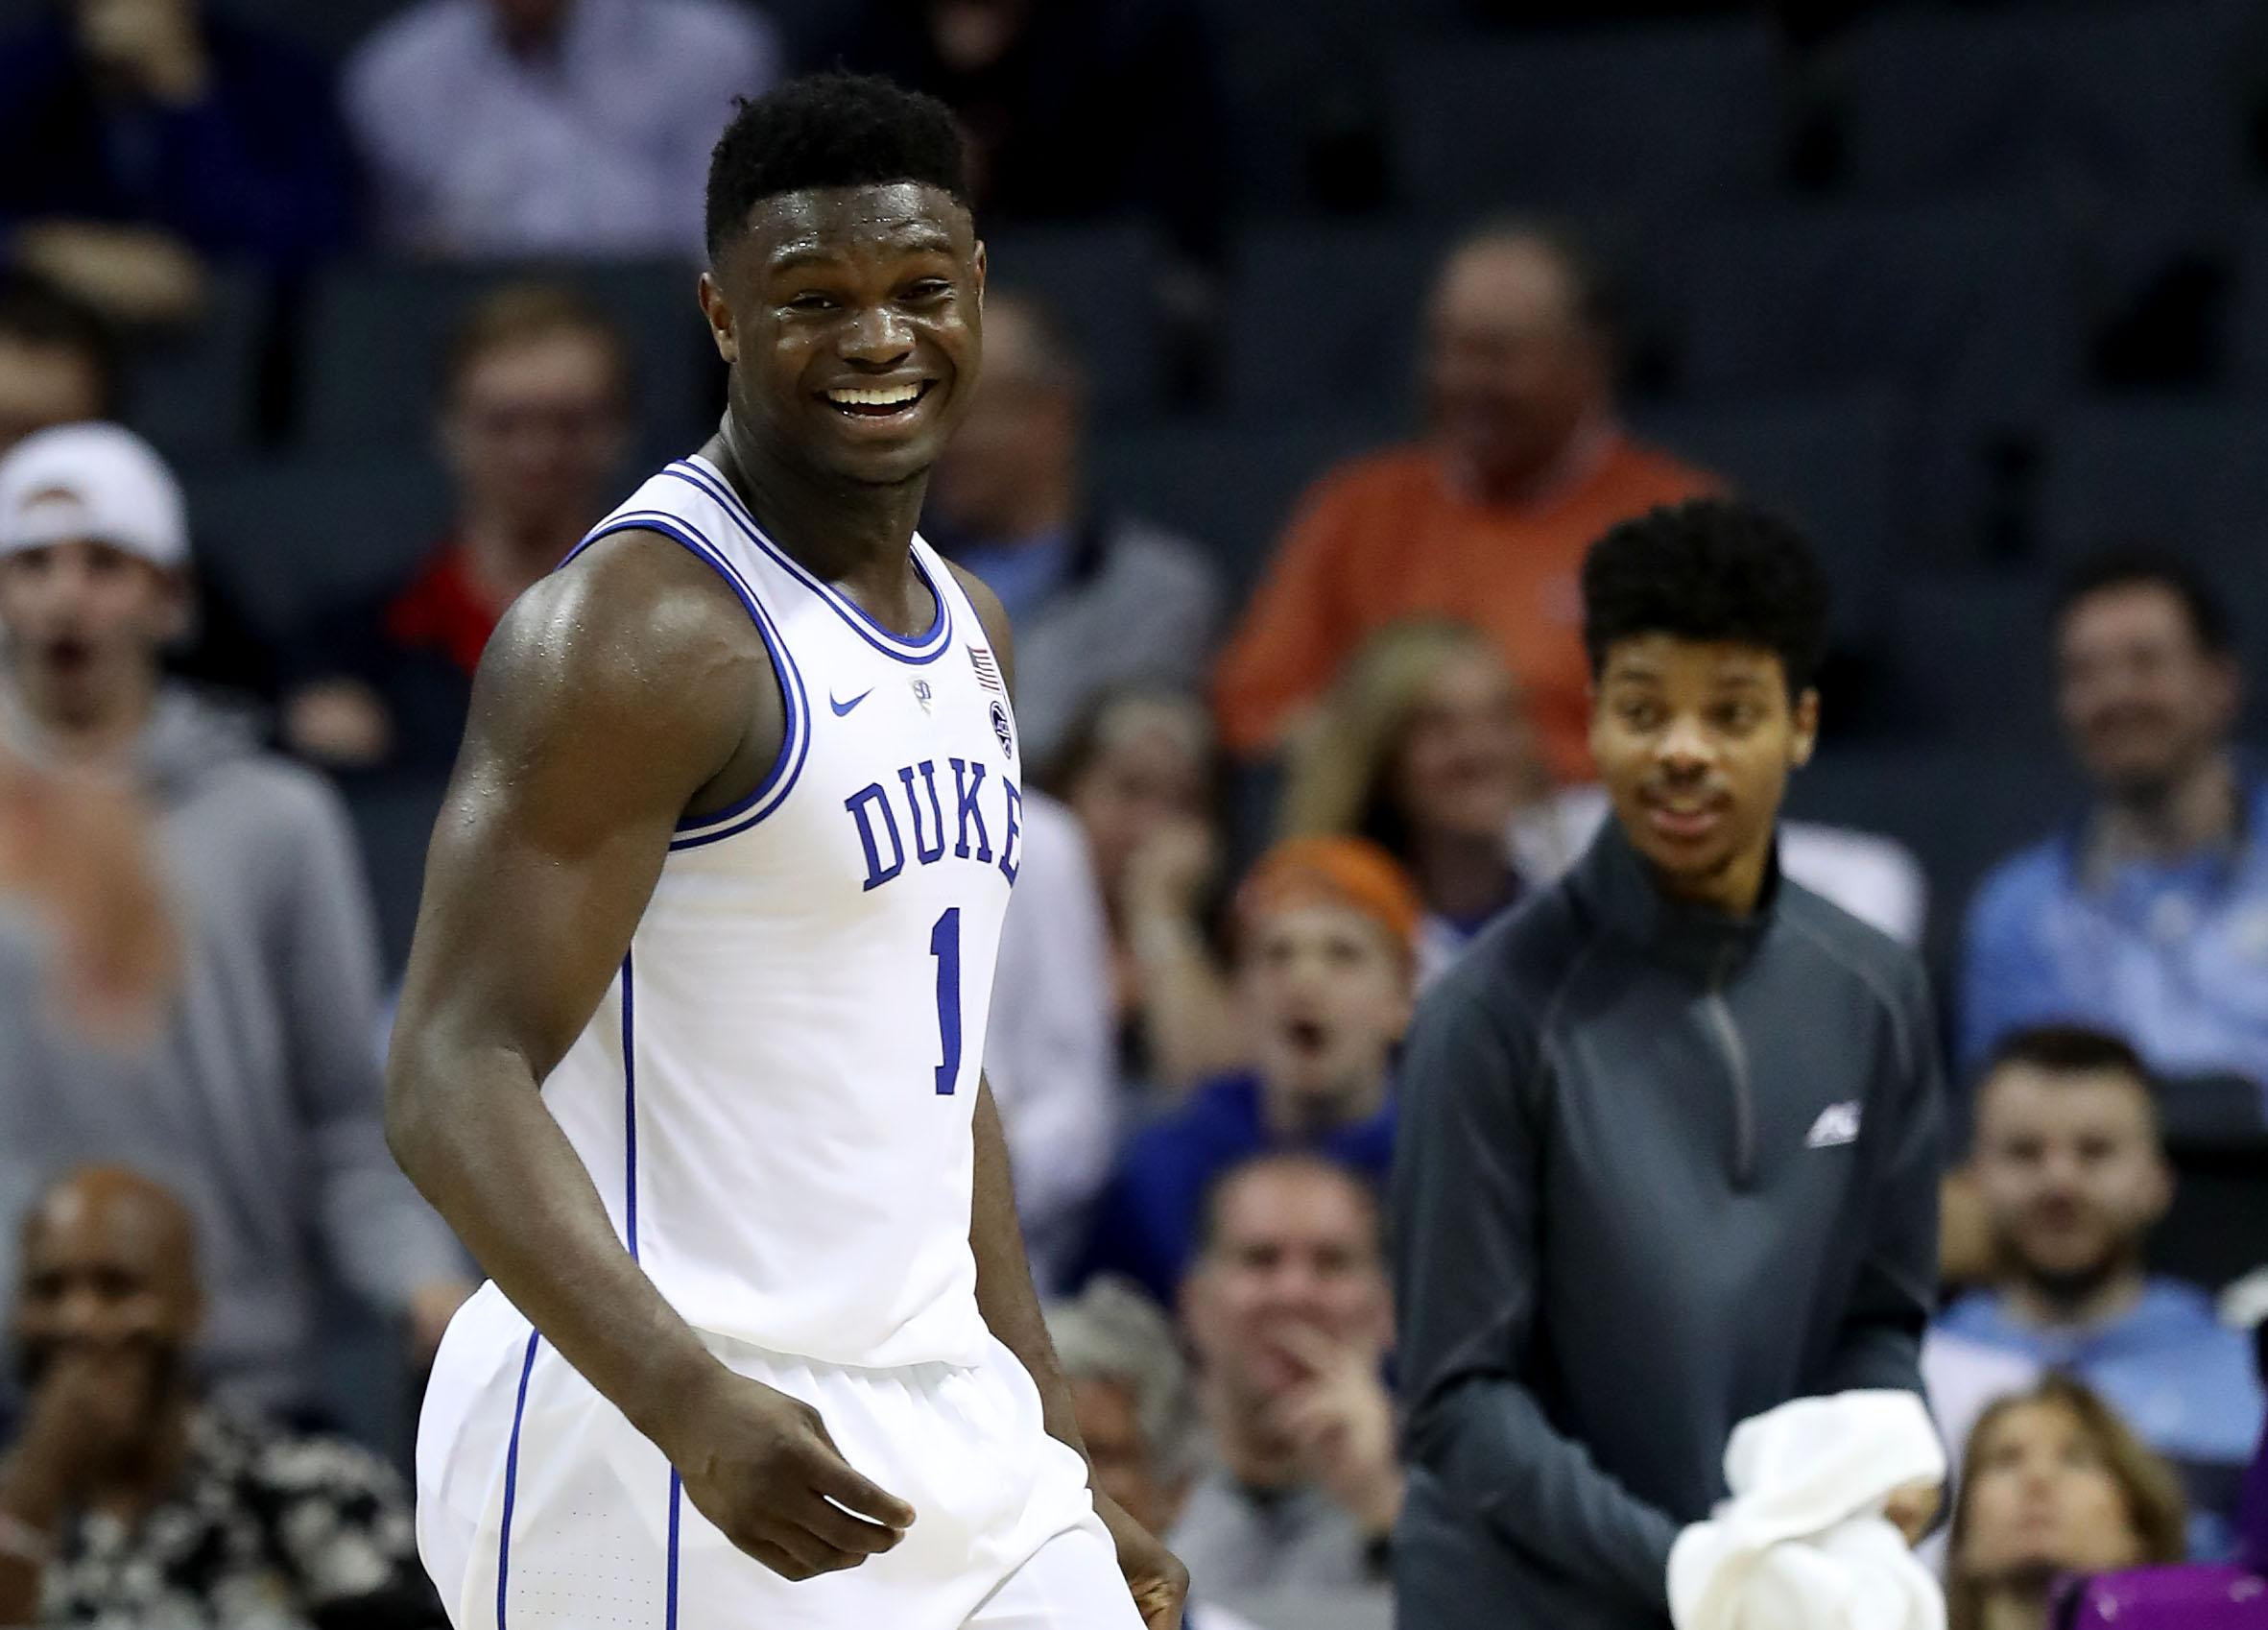 Duke looking into allegation against Zion Williamson